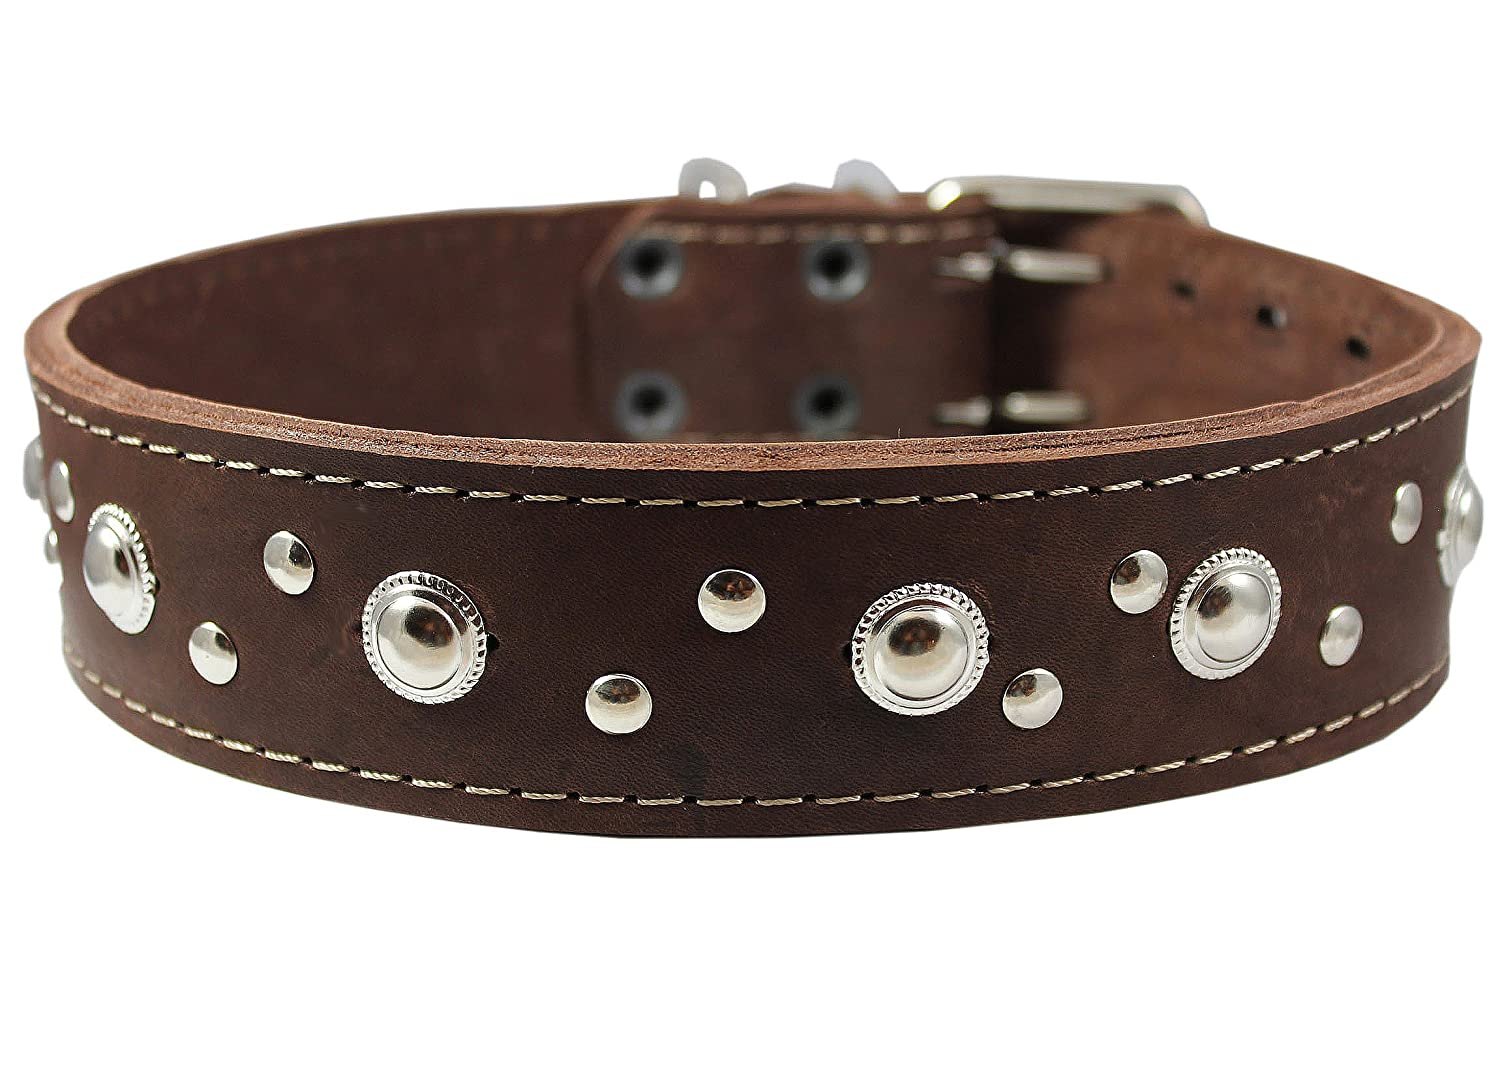 Thick Genuine Leather Studded Dog Collar 2 Wide Brown Sized to Fit 19-22 Neck 2 Wide Retriever Doberman Bulldog Cane Corso Pitbull